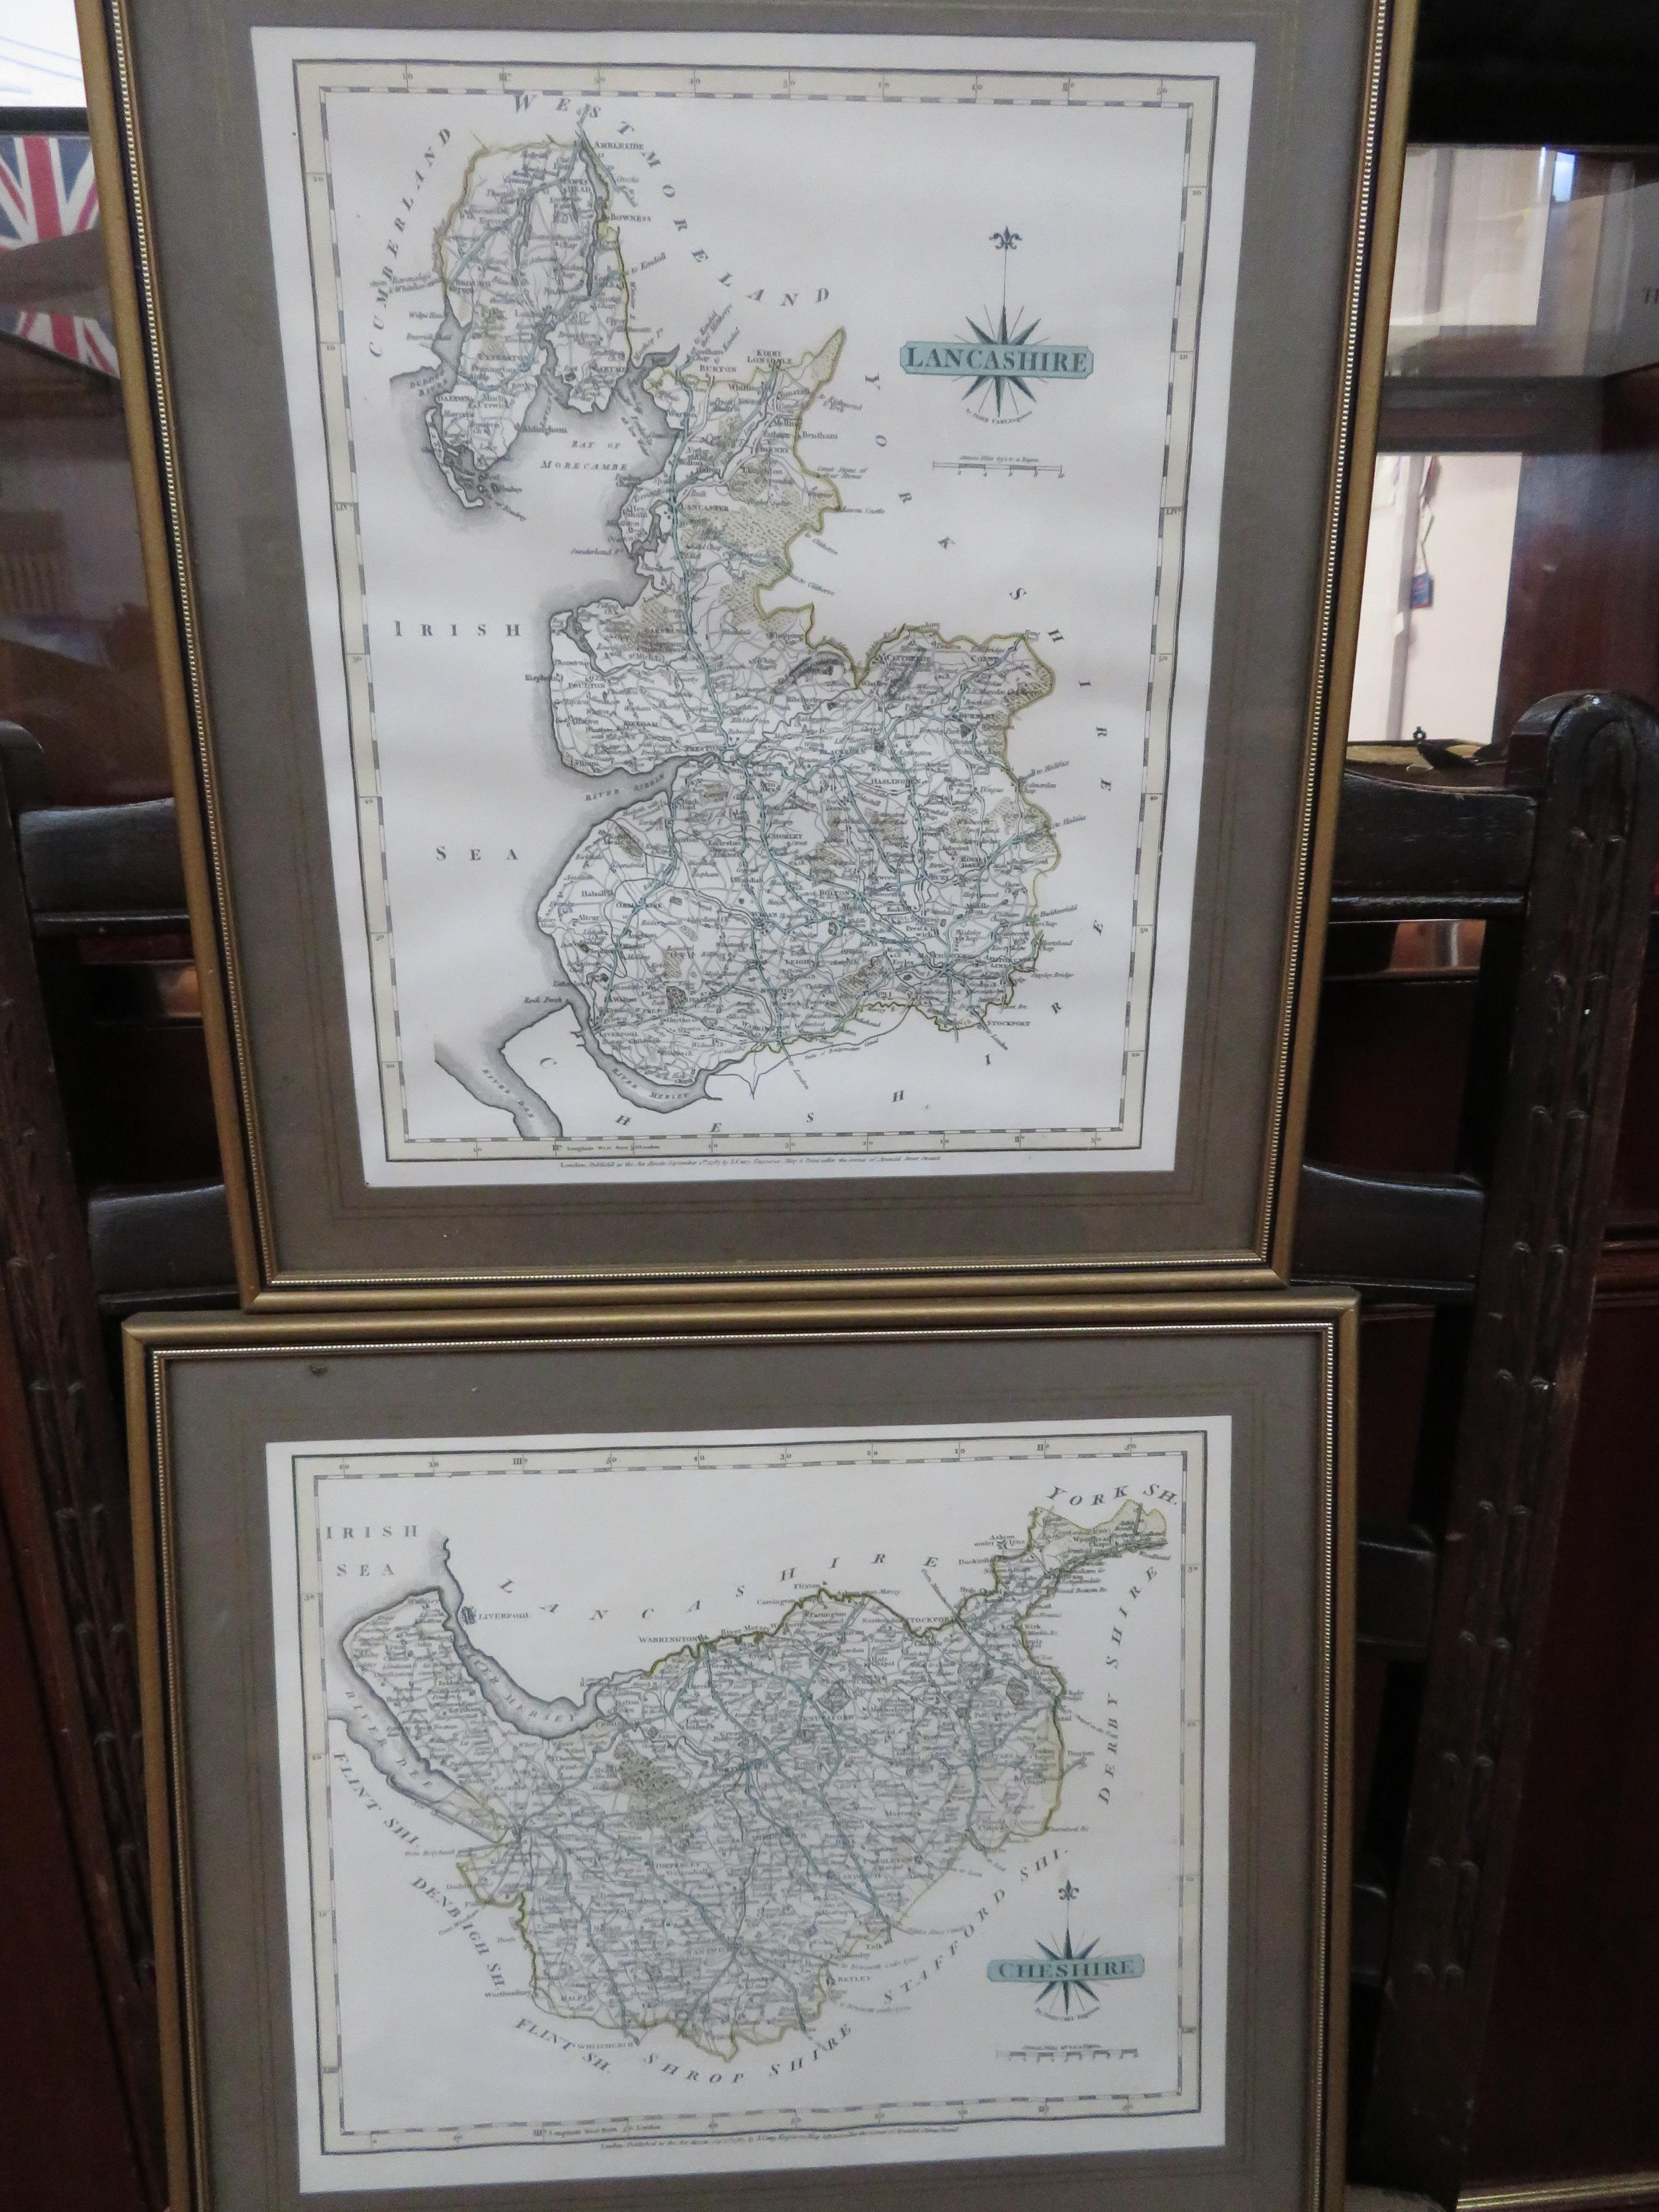 4x Early framed maps, Lancashire, Cheshire, Yorksh - Image 2 of 2